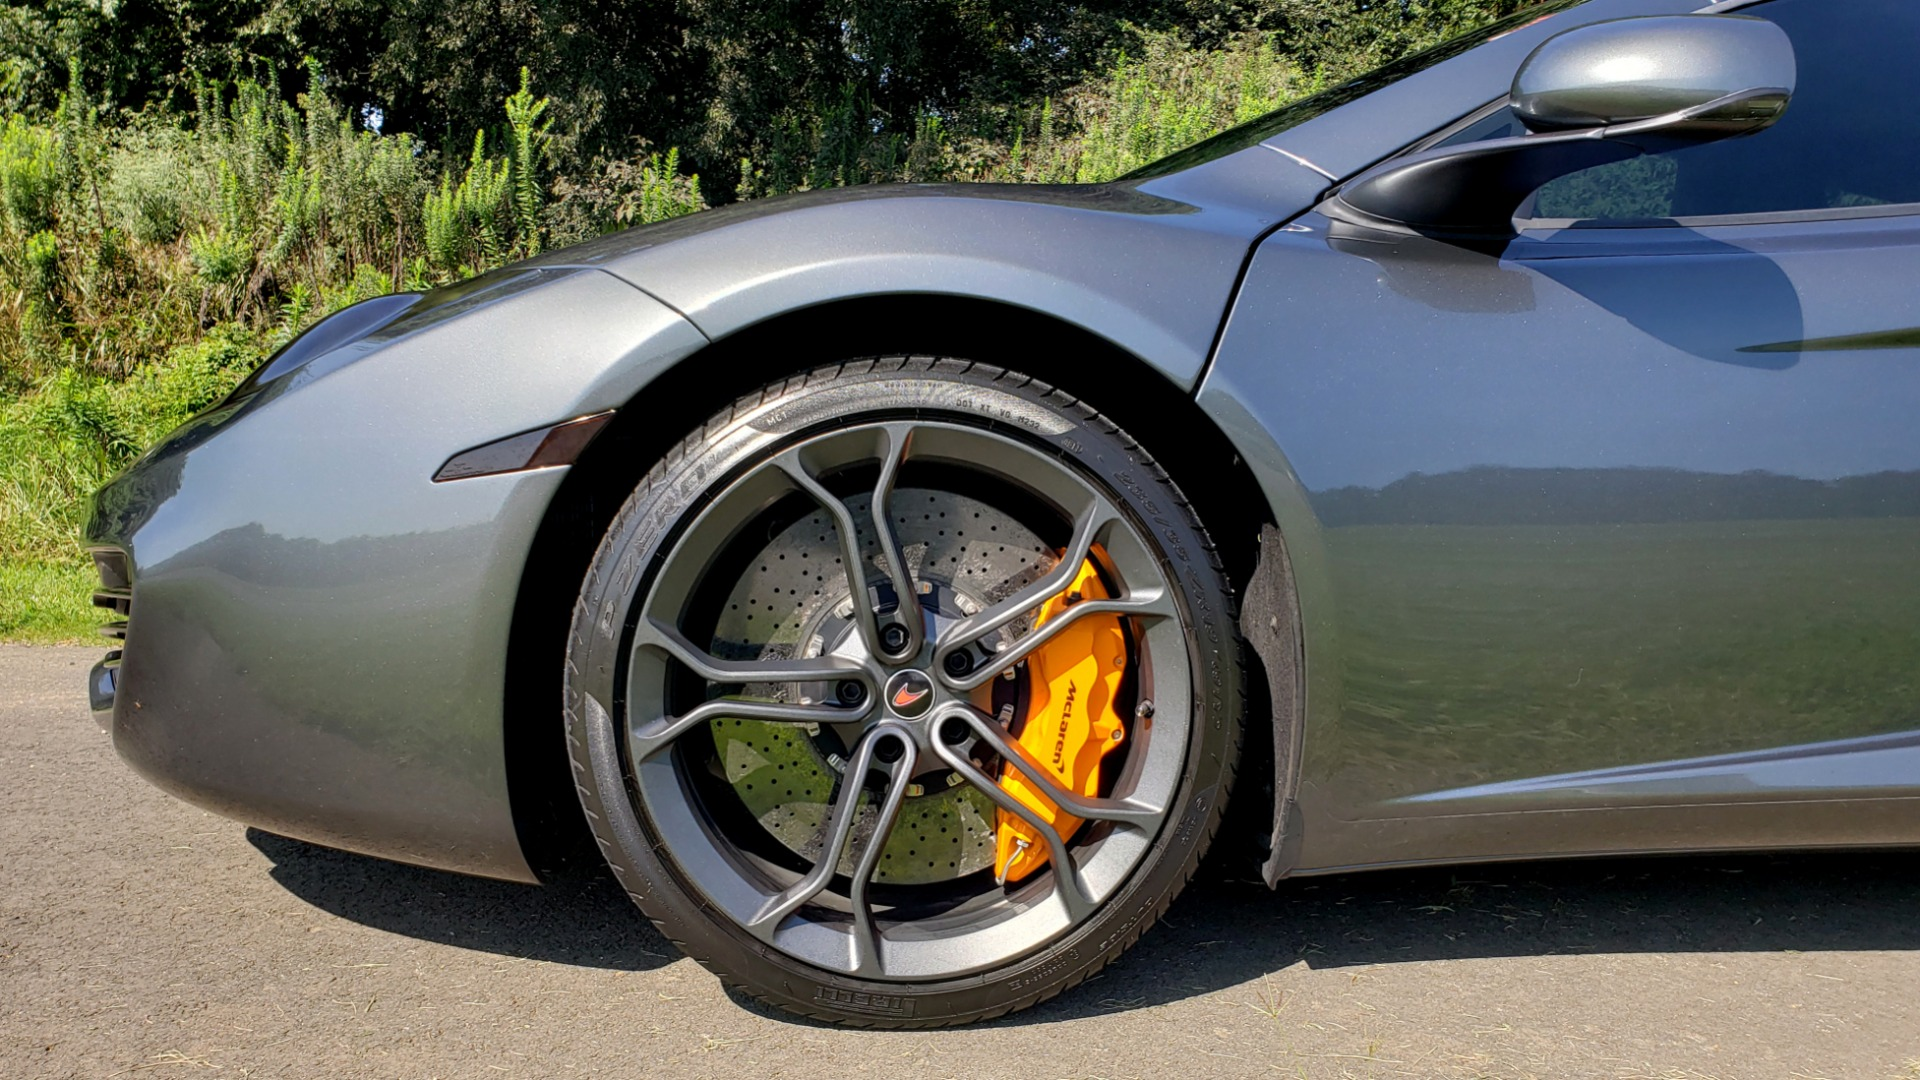 Used 2012 McLaren MP4-12C COUPE / 3.8 L V8 592HP / AUTO / NAV / CCB / LOW MILES for sale $97,999 at Formula Imports in Charlotte NC 28227 92